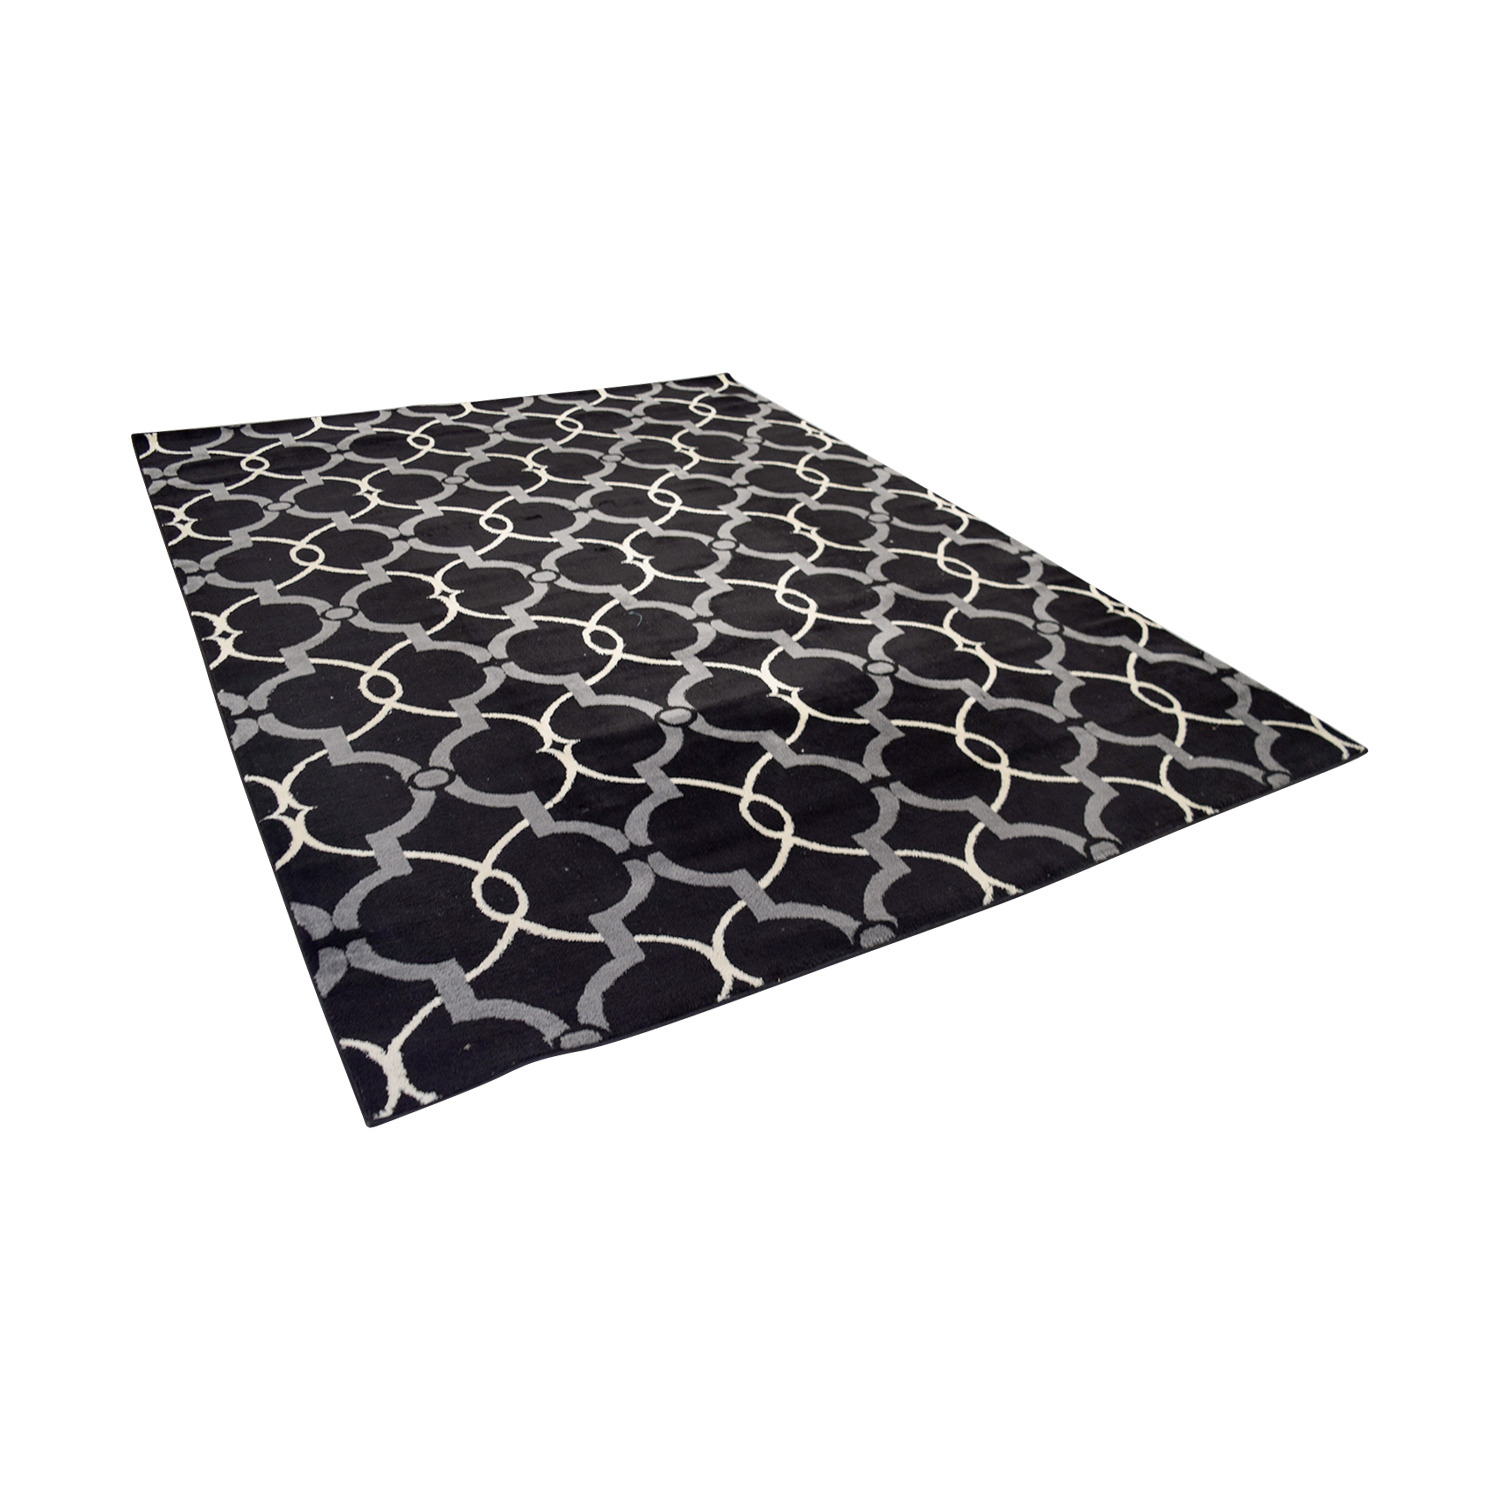 Safavieh Safavieh Black Grey and White Modern Rug second hand